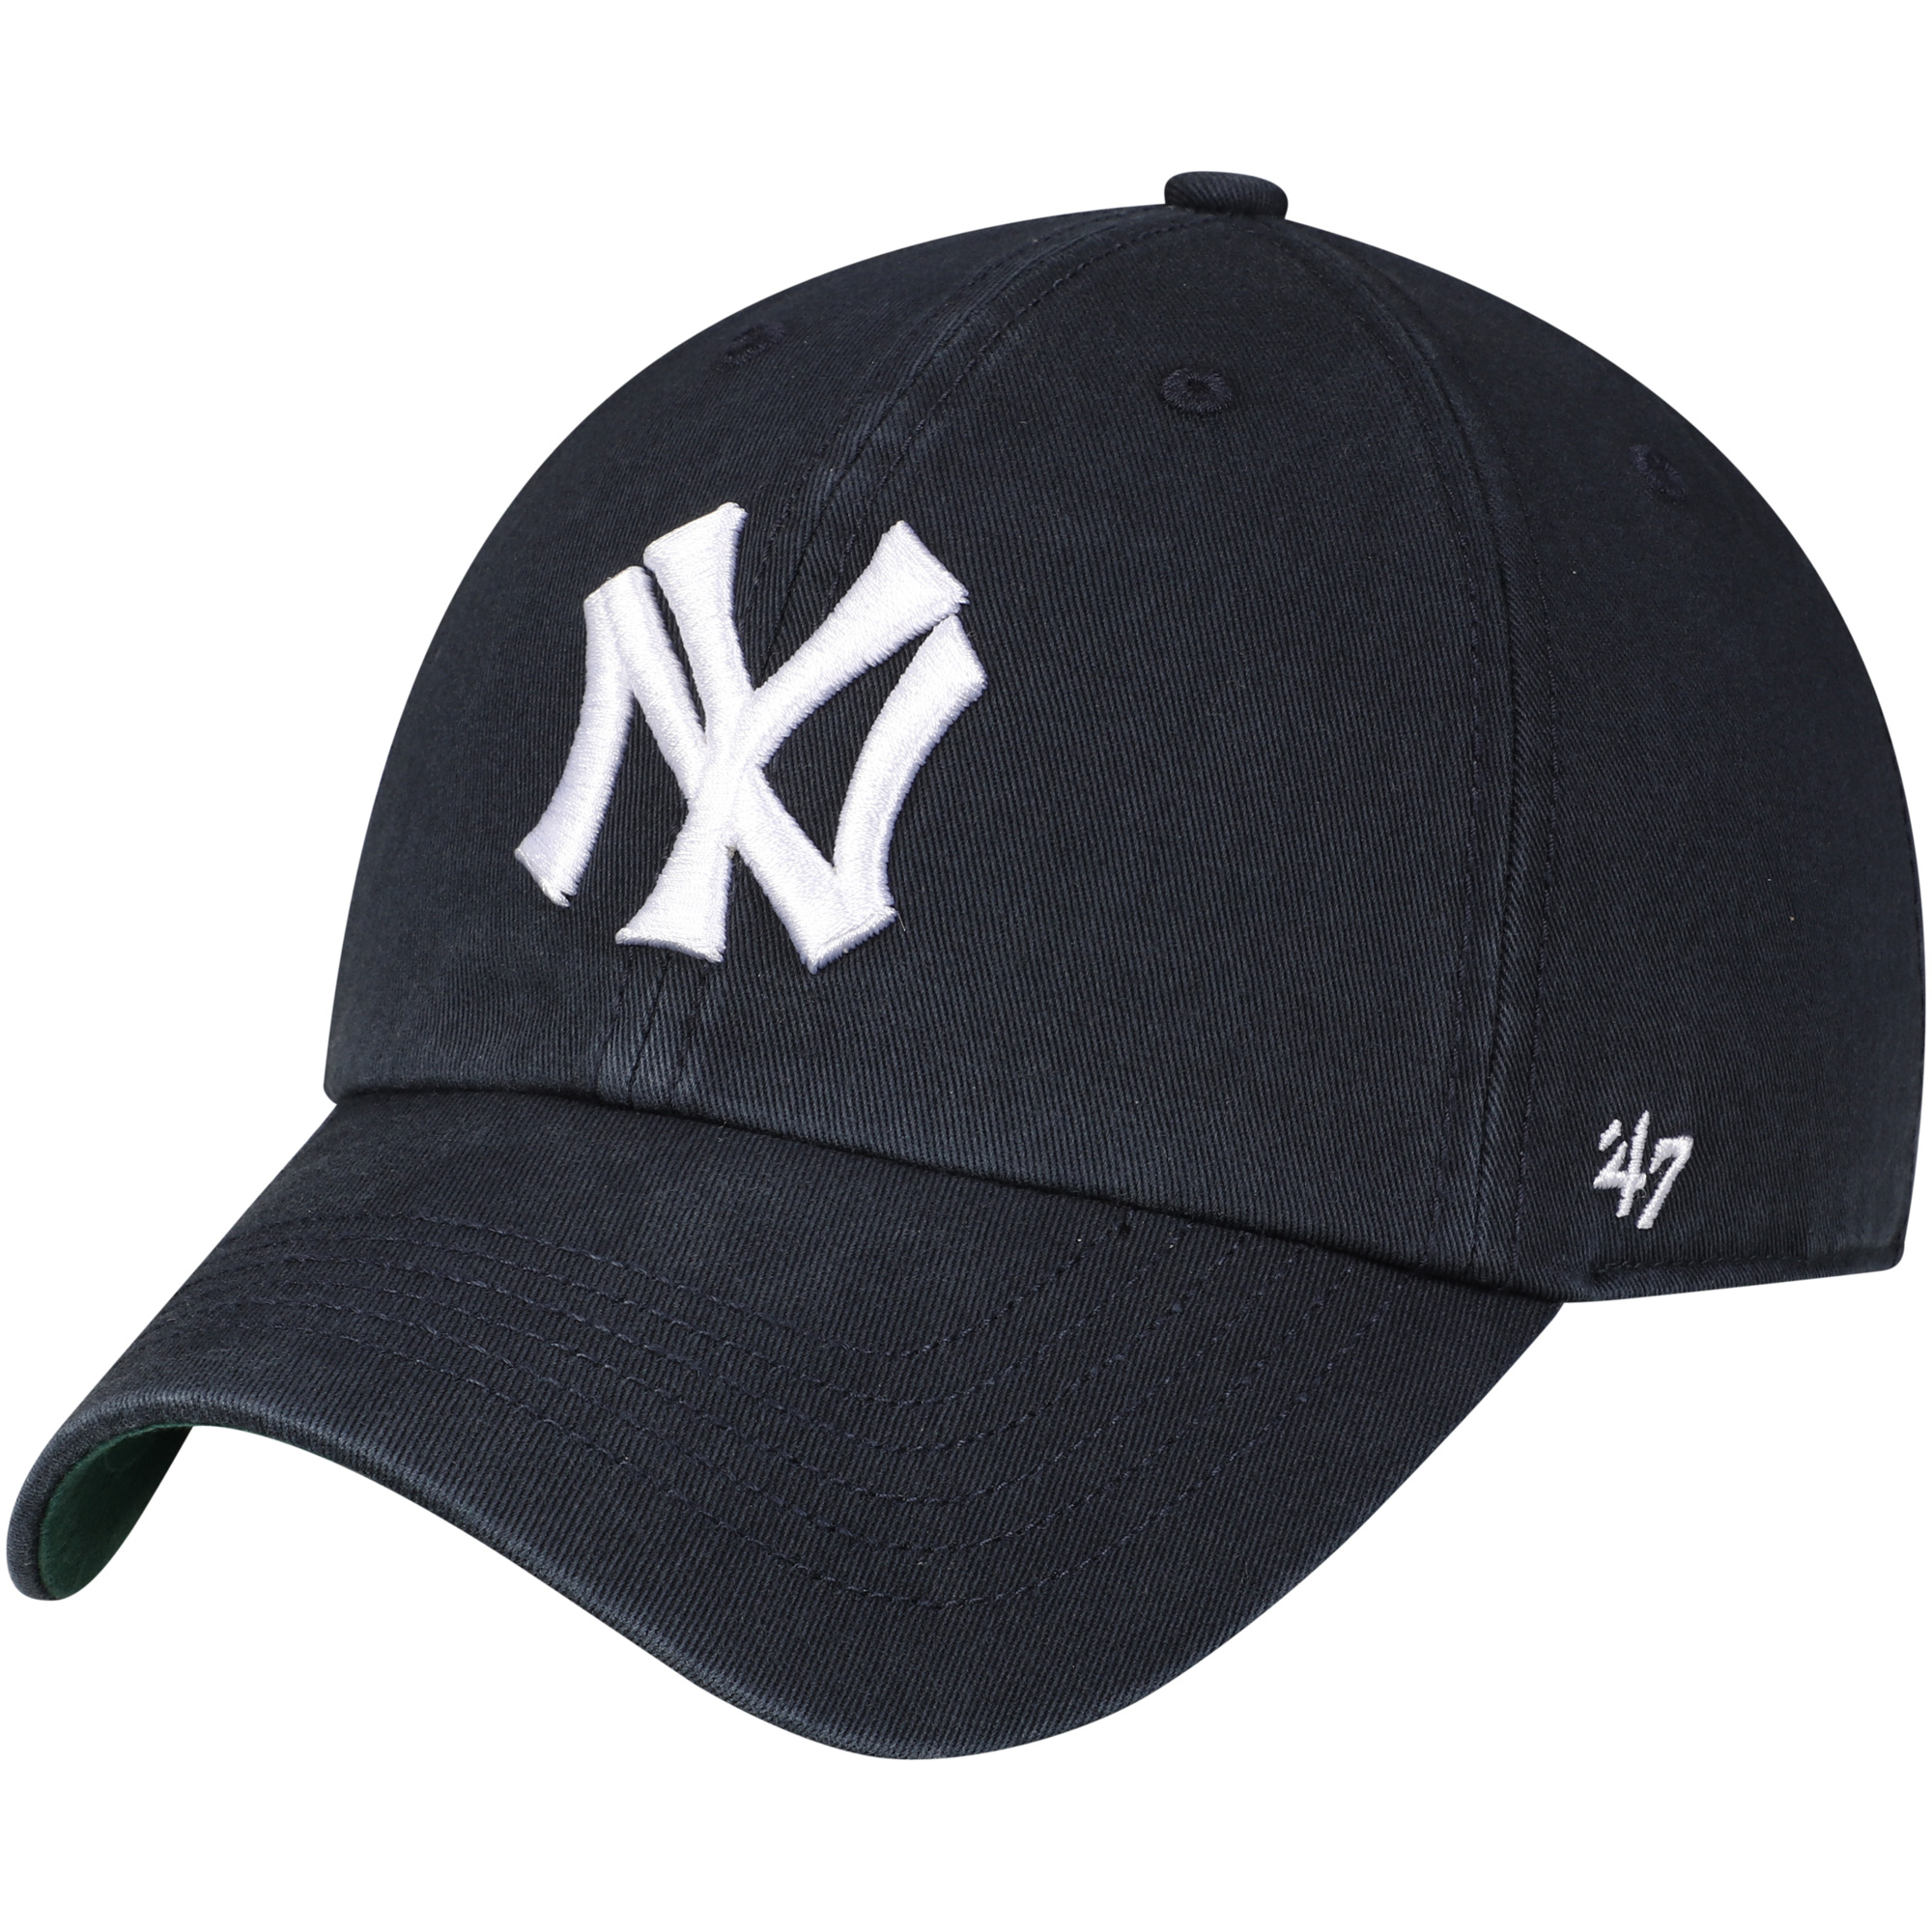 New York Yankees '47 1911 Franchise Cooperstown Fitted Hat - Navy